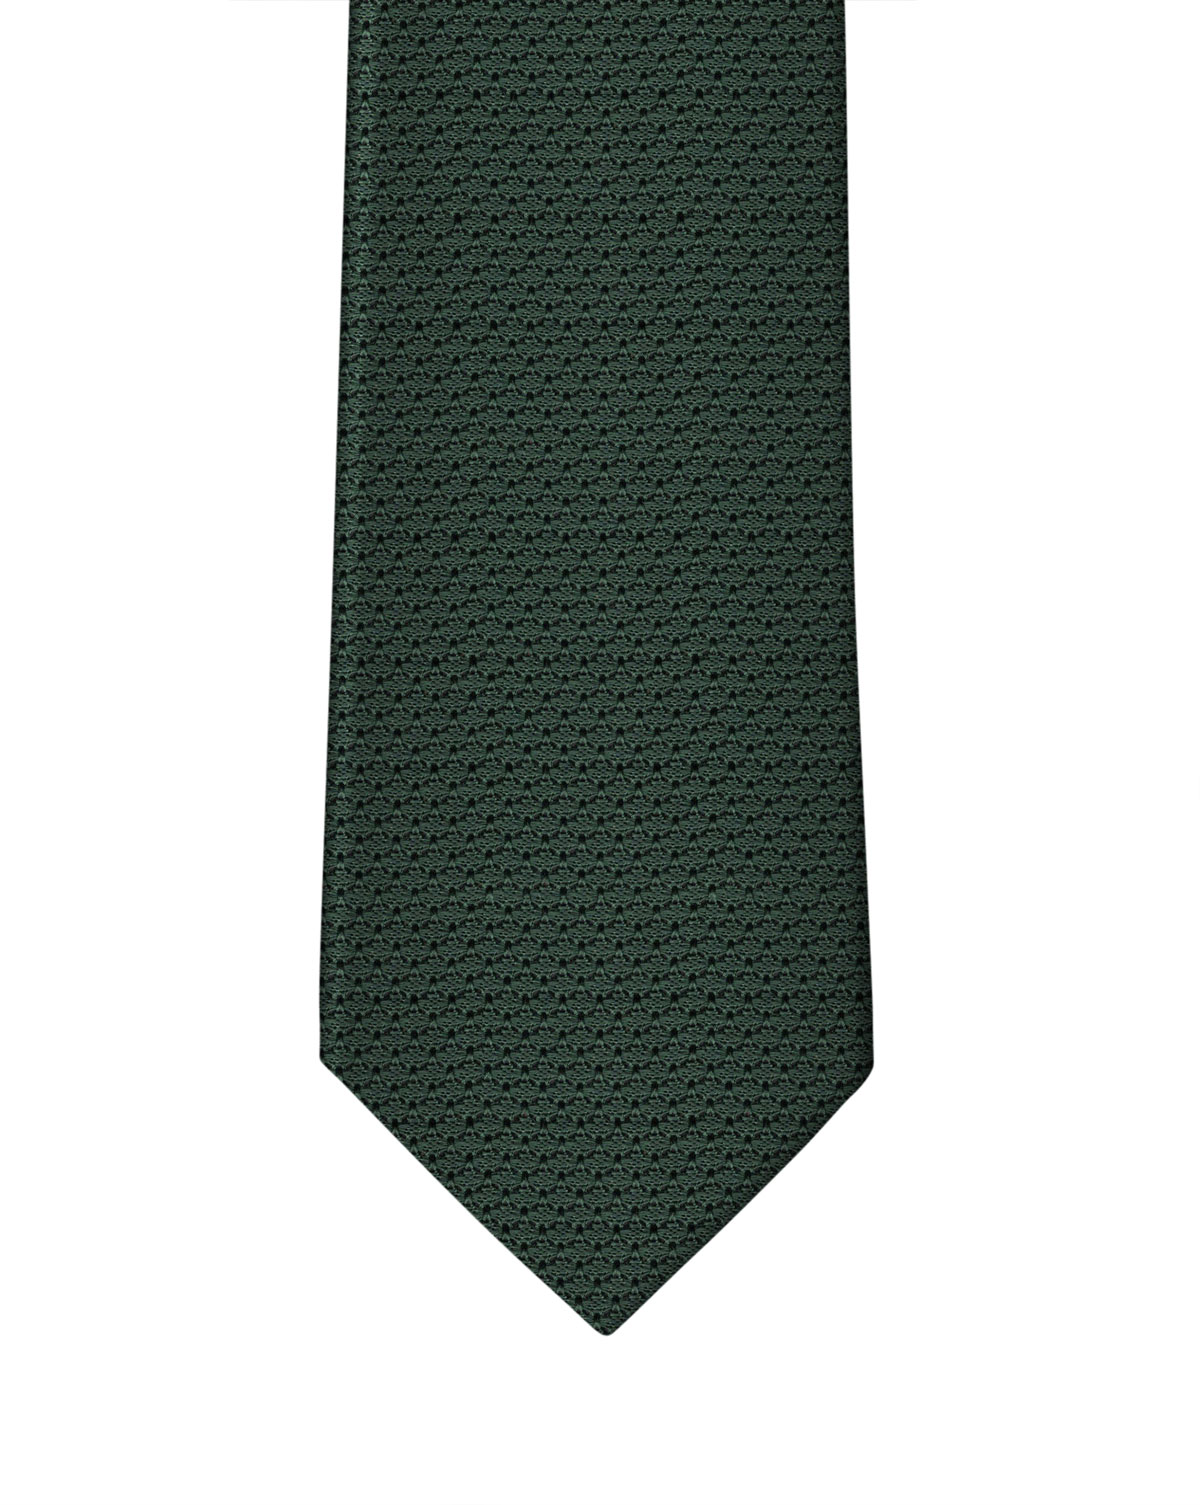 Hunter Green Grenadine Necktie